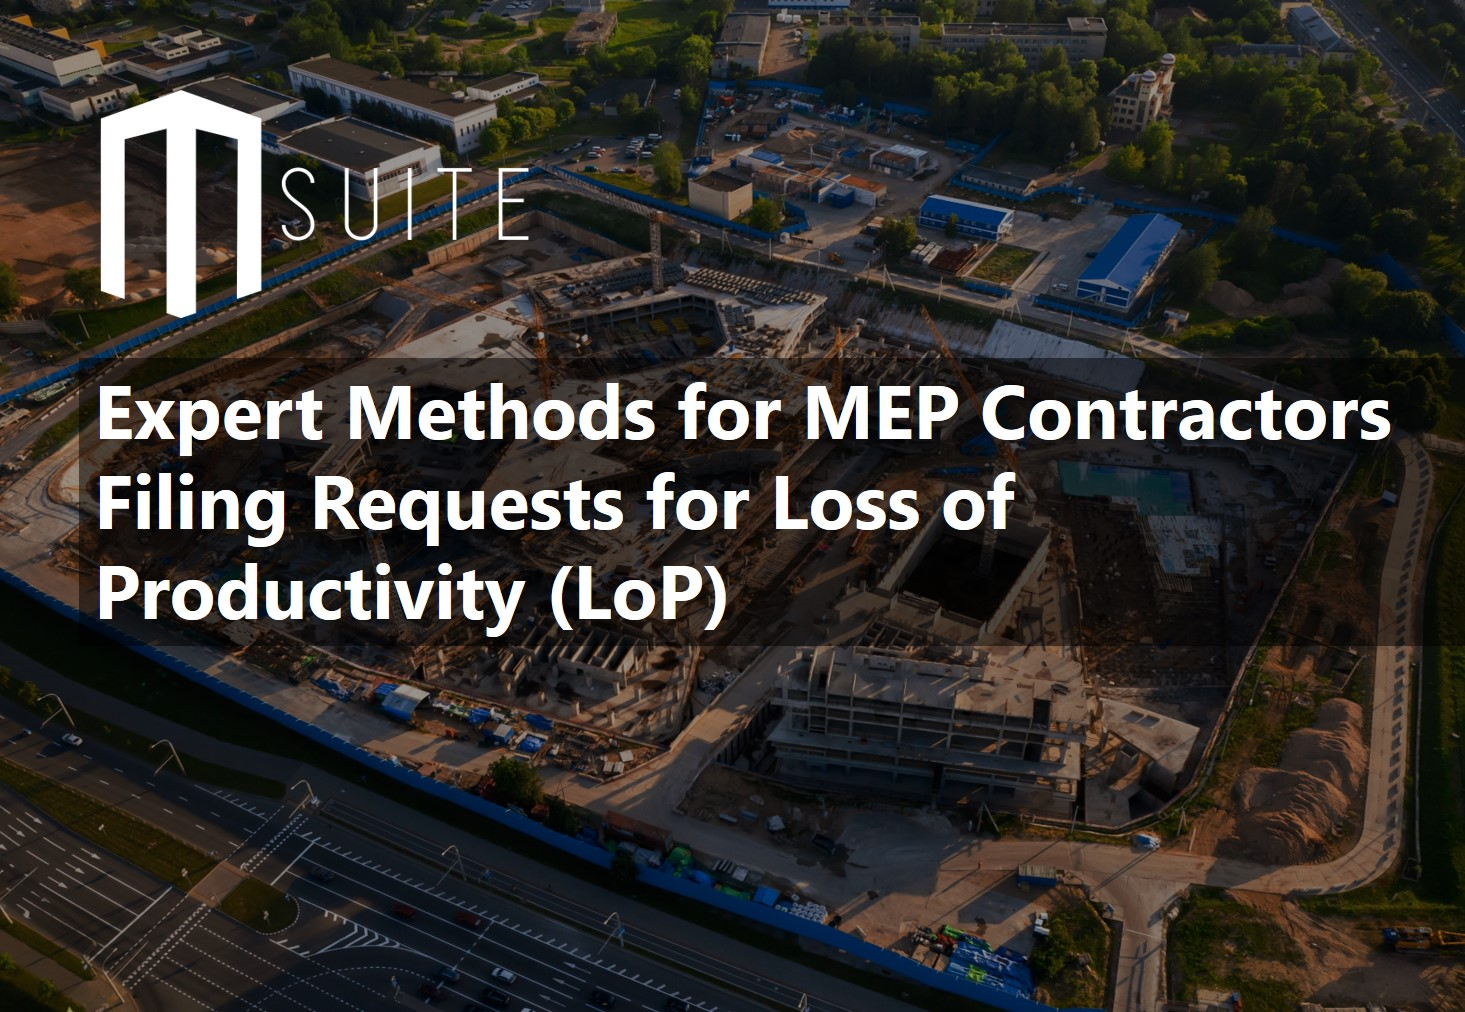 Expert Methods for MEP Contractors Filing Requests for Loss of Productivity (LoP)